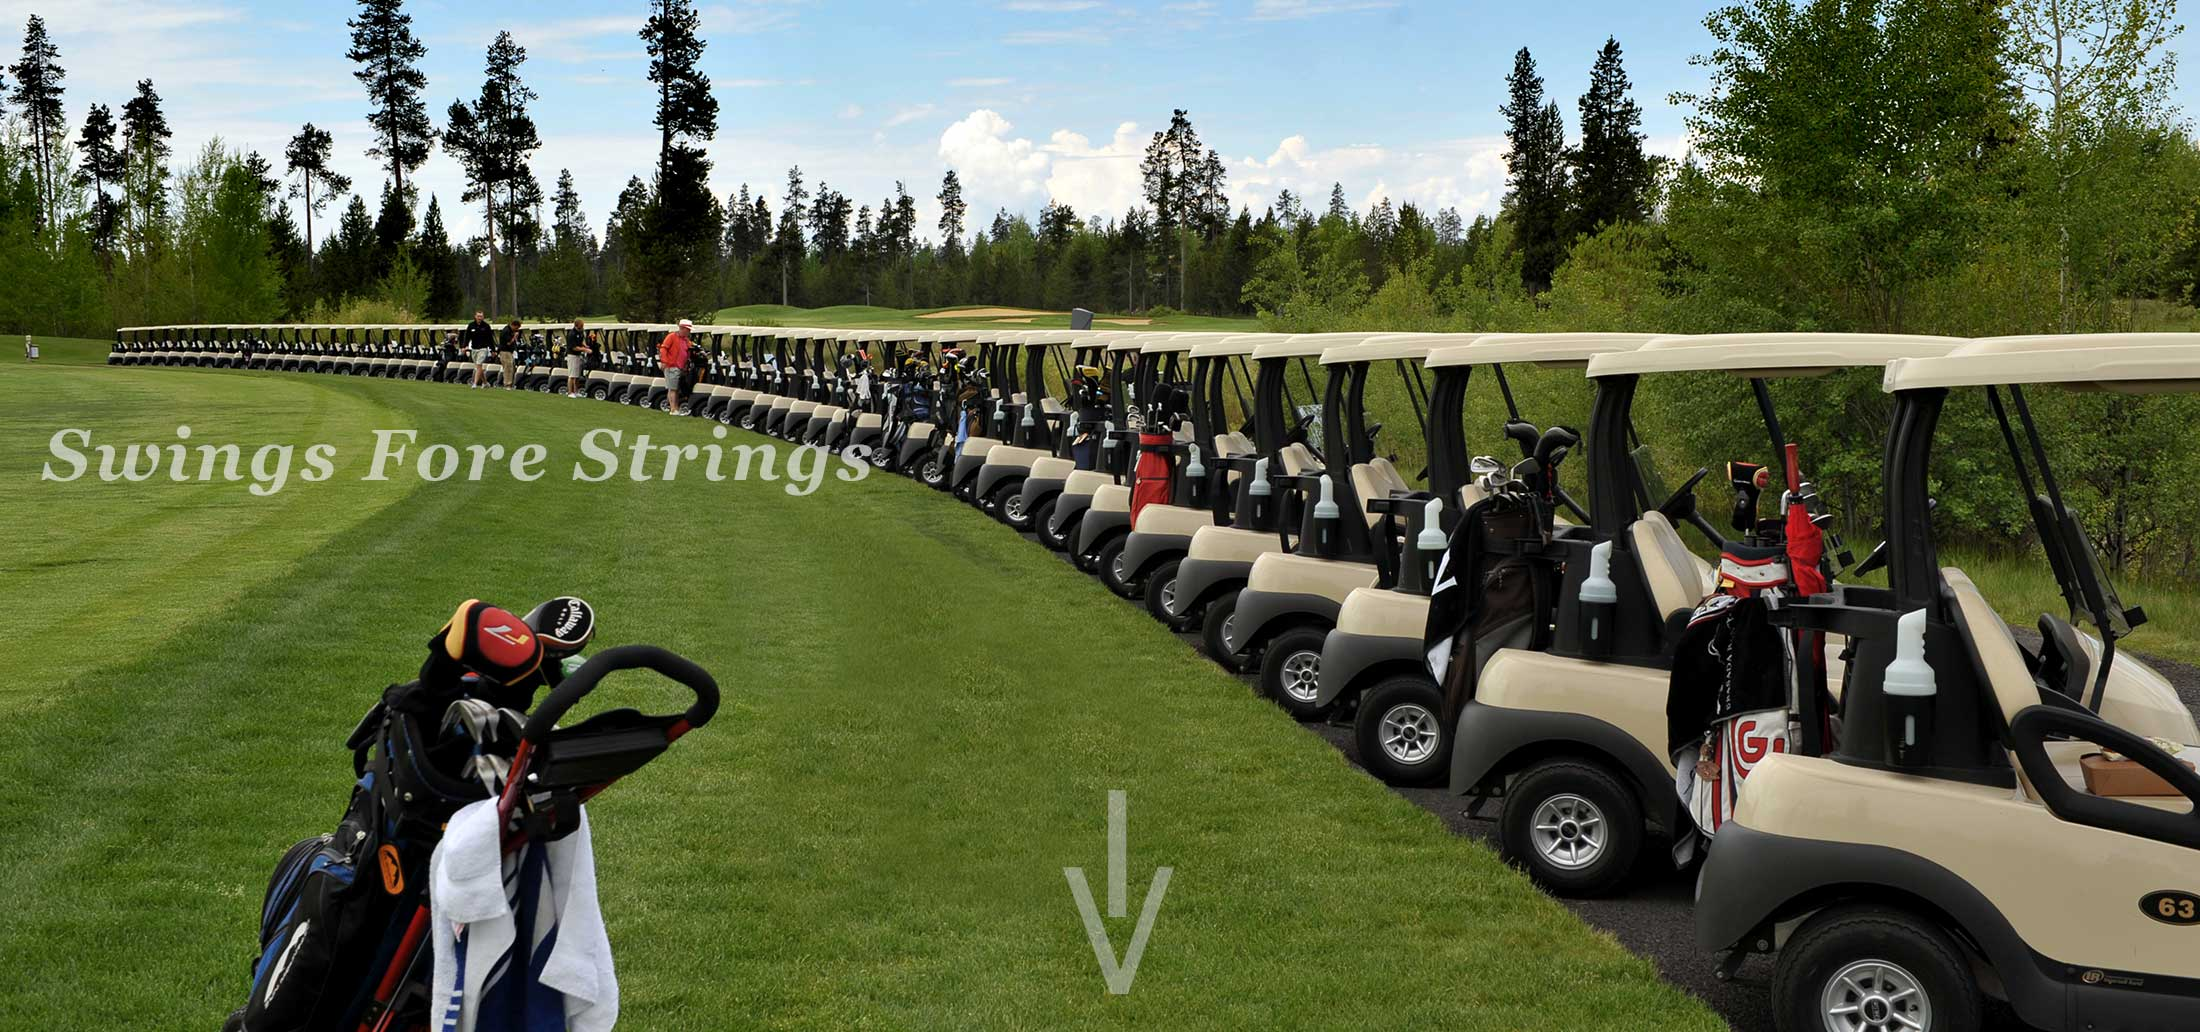 Sunriver Music Festival - Swings fore Strings